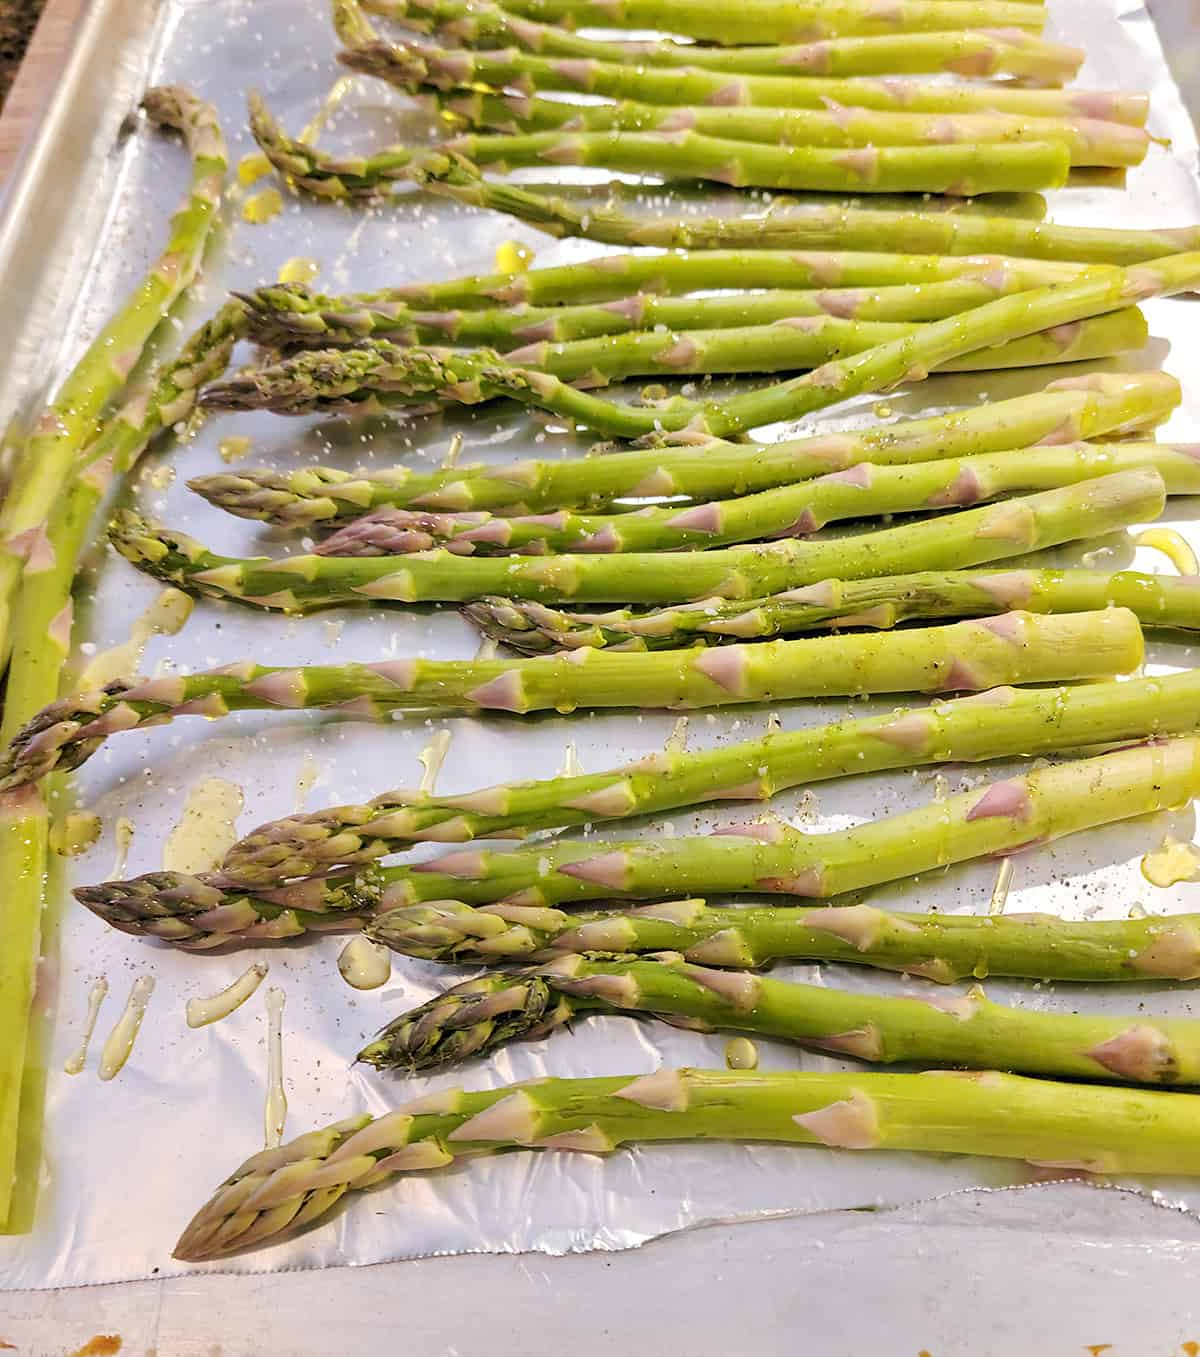 Asparagus on lined baking sheet drizzled with oil.